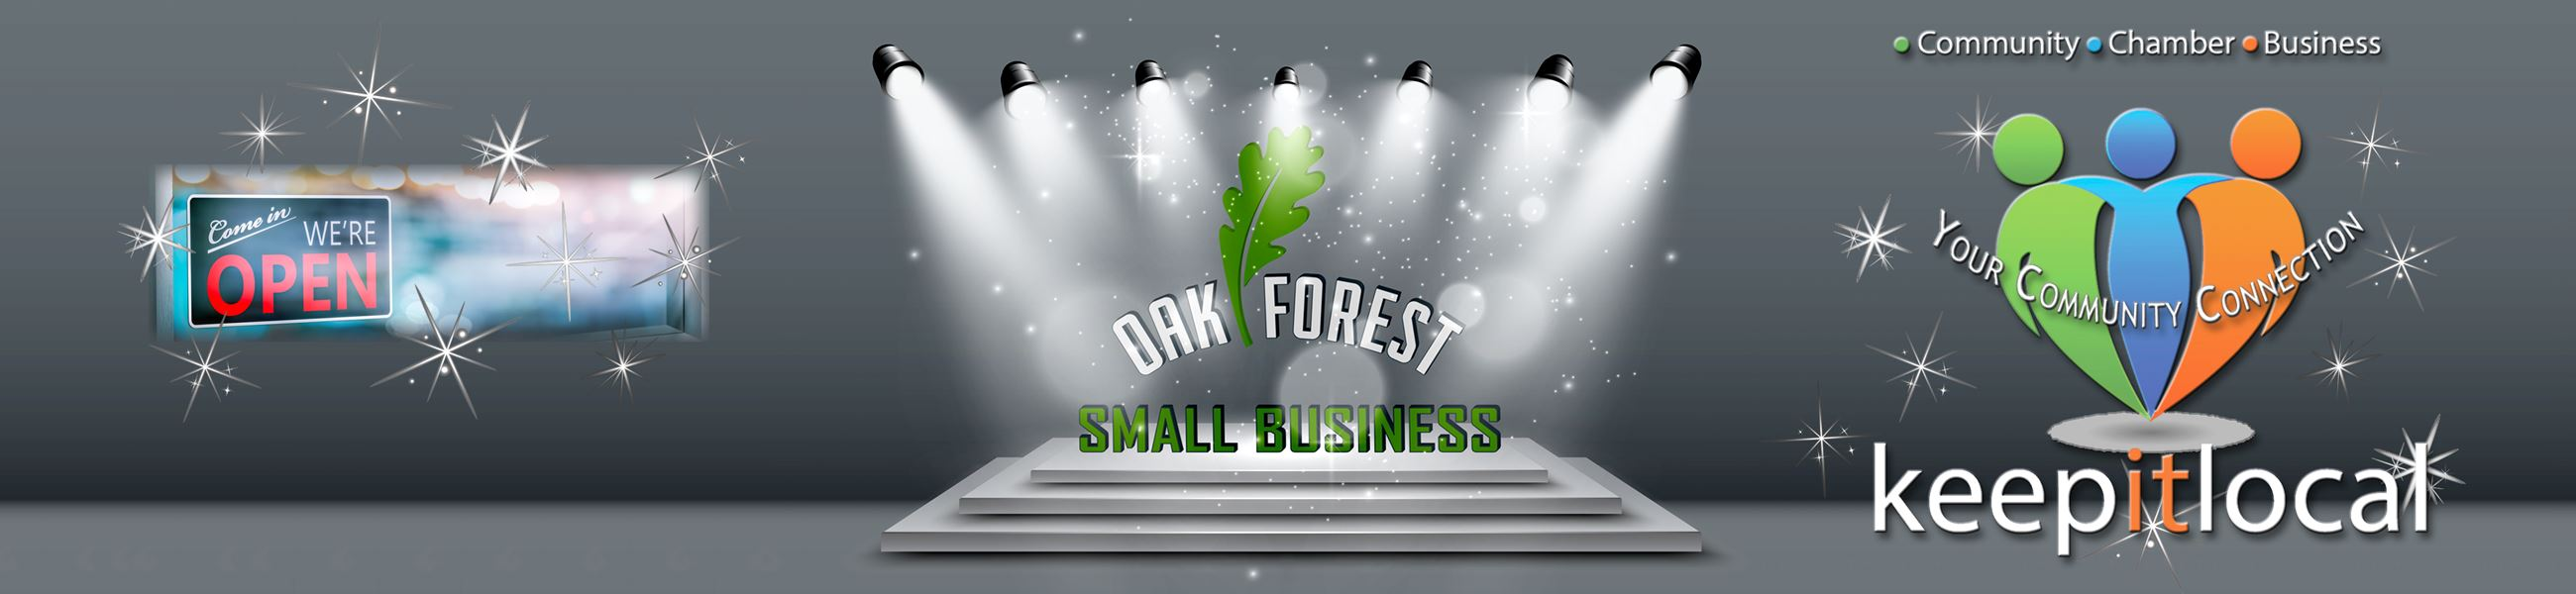 Spot Light on OF Business Banner